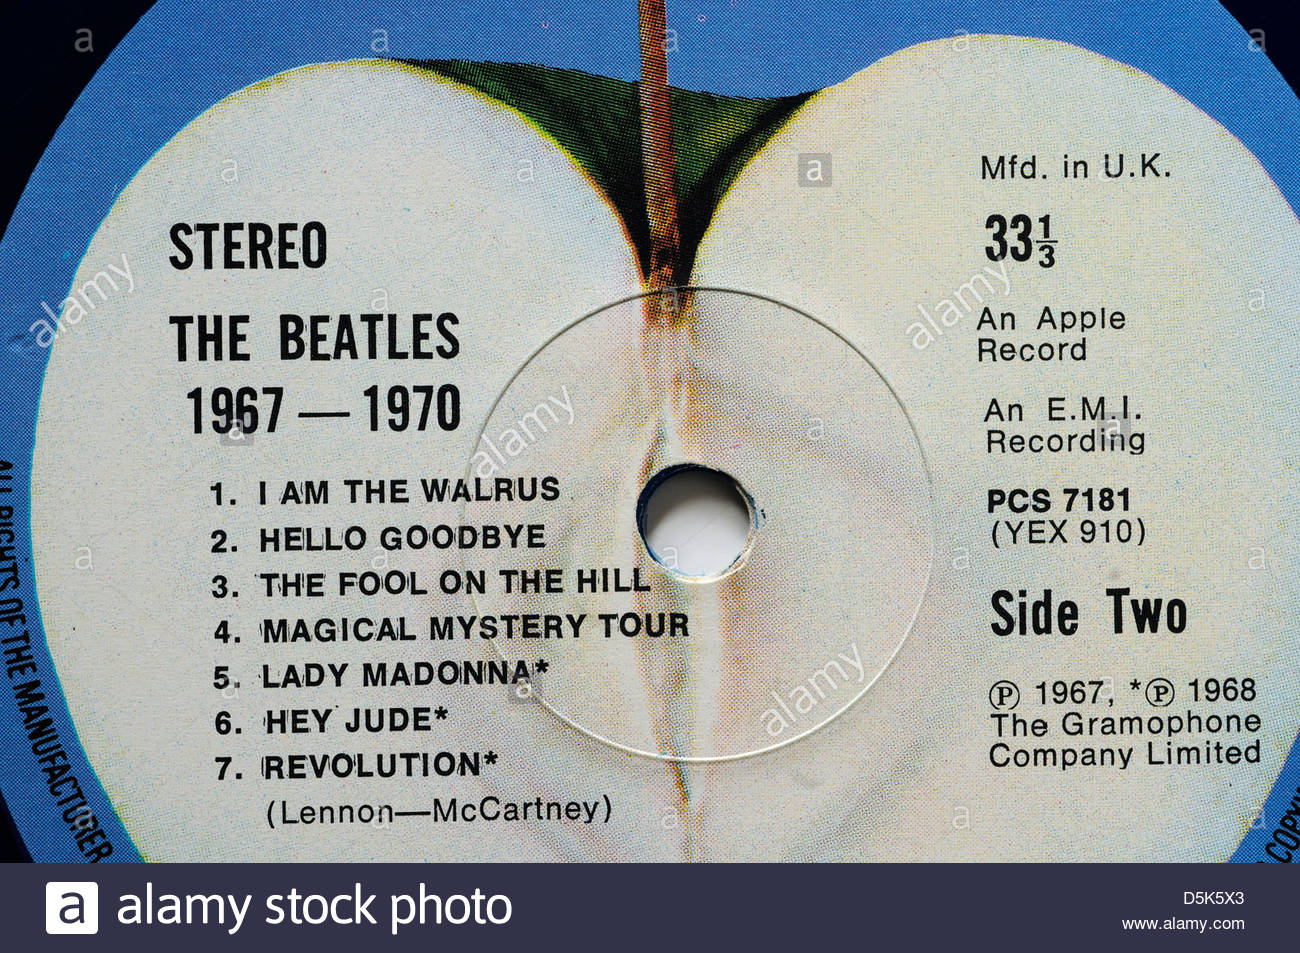 1967 Record Stock Photos & 1967 Record Stock Images - Alamy